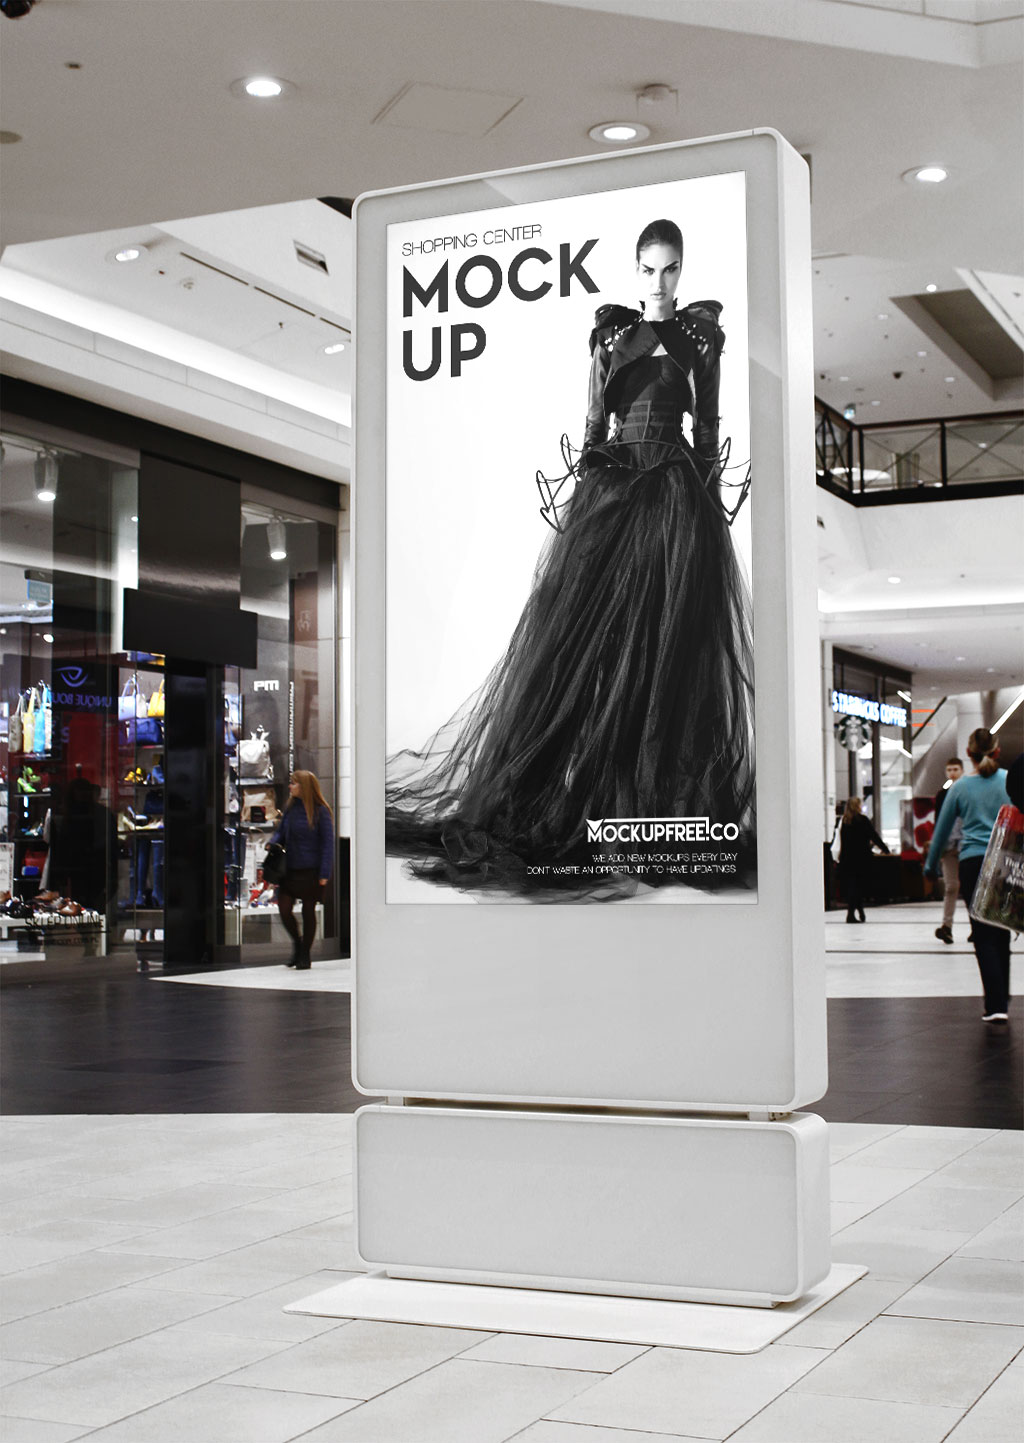 Free-indoor-advertising-shopping-center-mockup-psd-3